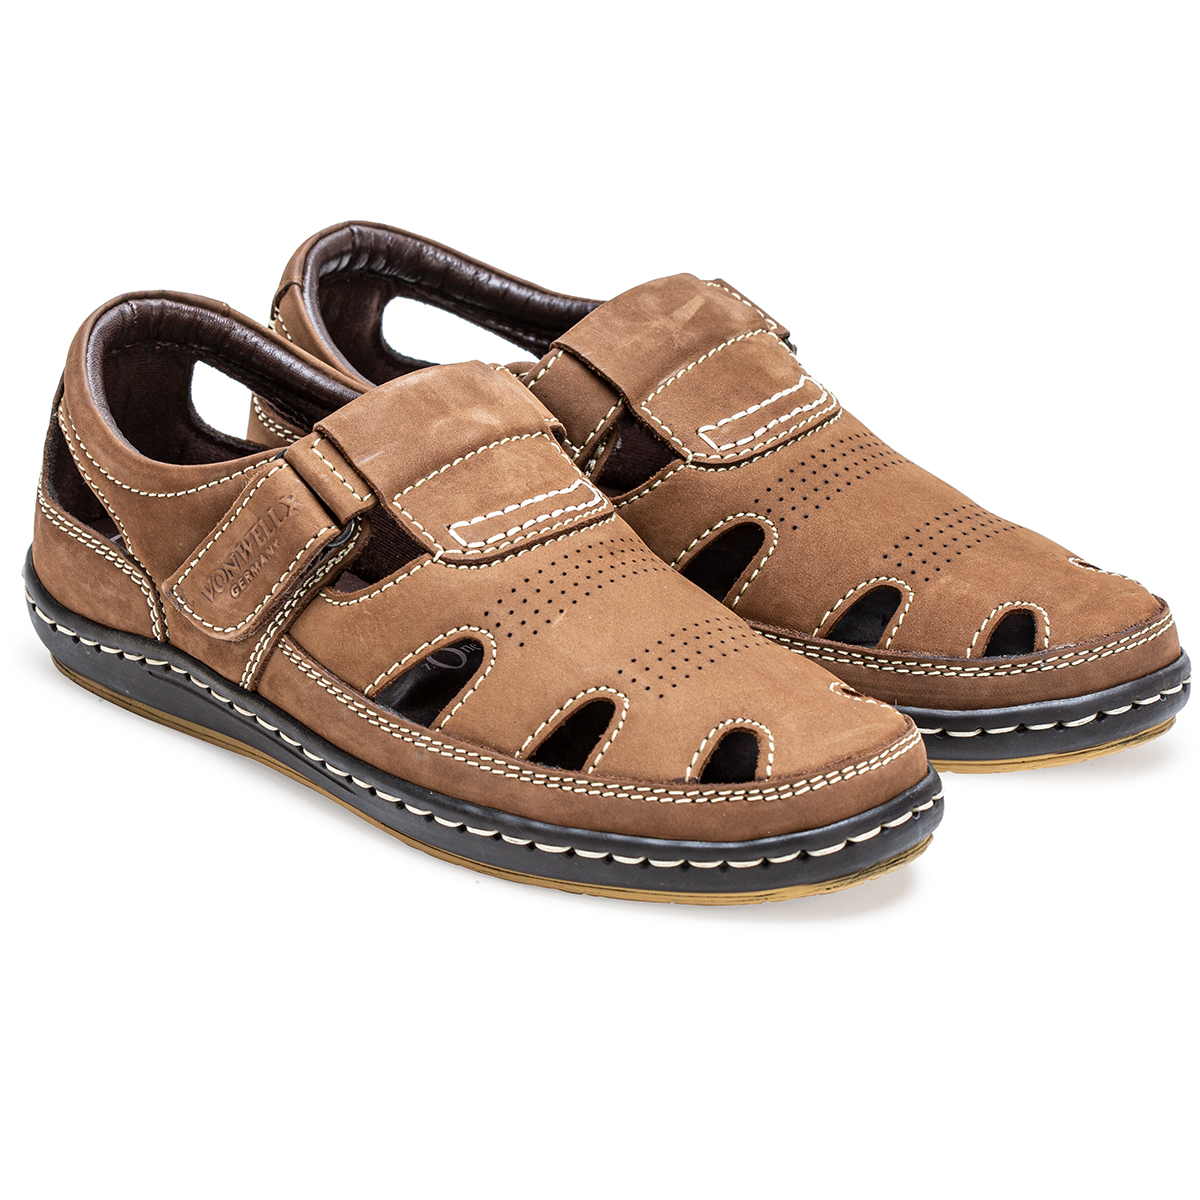 Buy Von Wellx Germany Comfort Tread Chikoo Sandals Online in Maharashtra